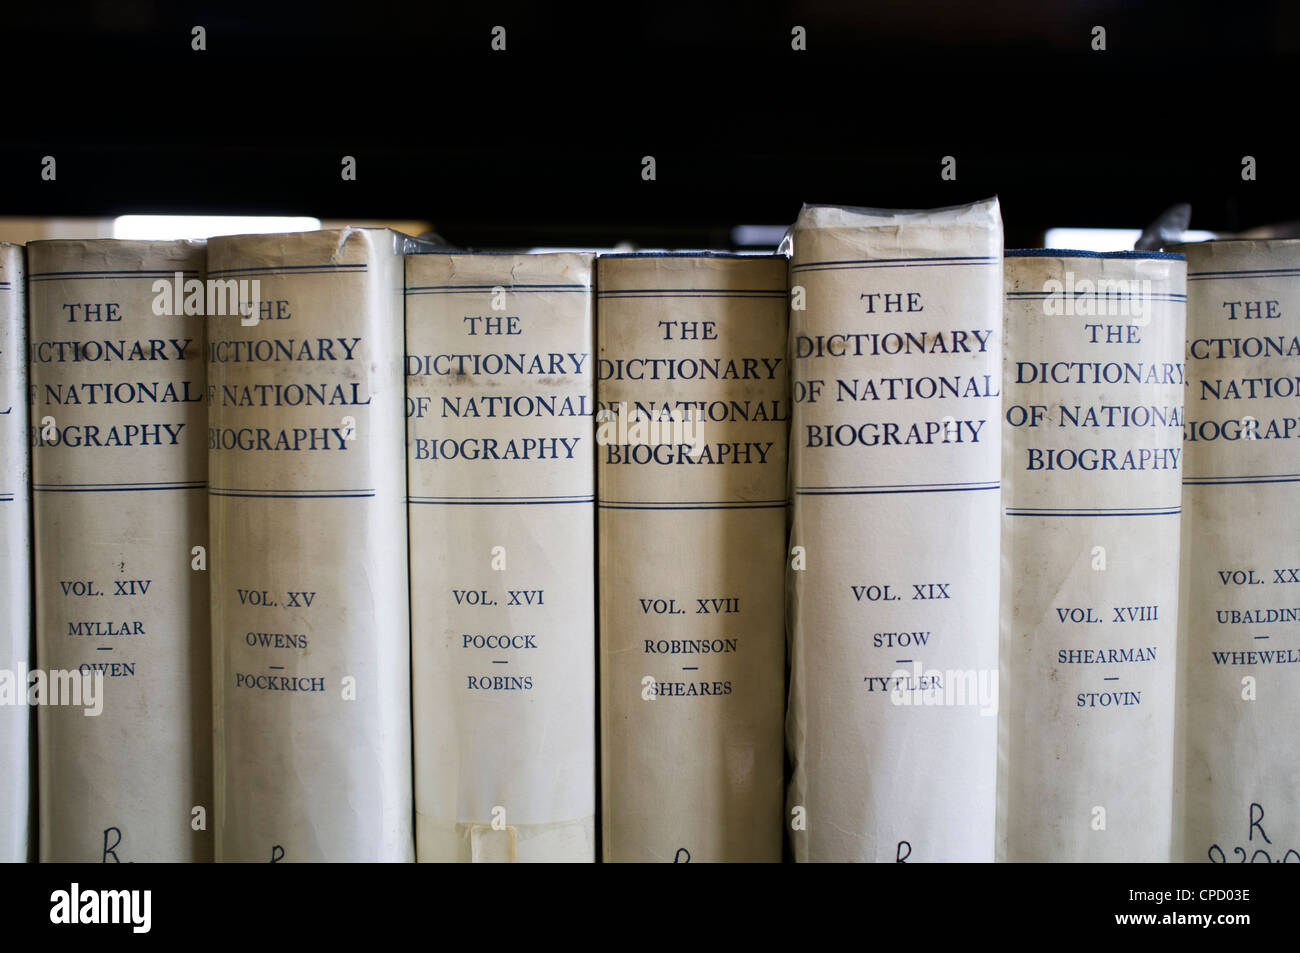 Copies of the Dictionary of National Biography books in the reference section of a public library, UK - Stock Image